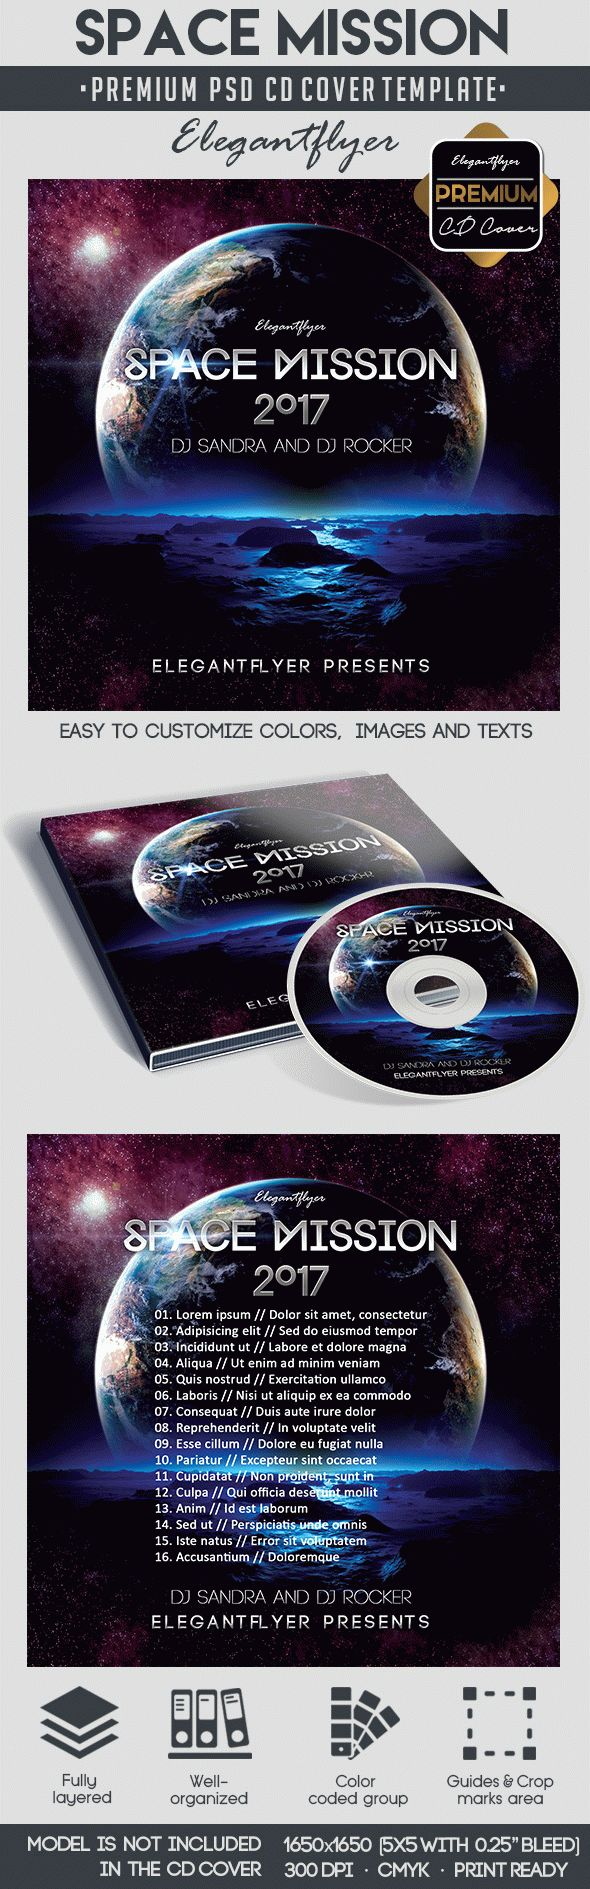 Space Mission – Premium CD&DVD cover PSD Template